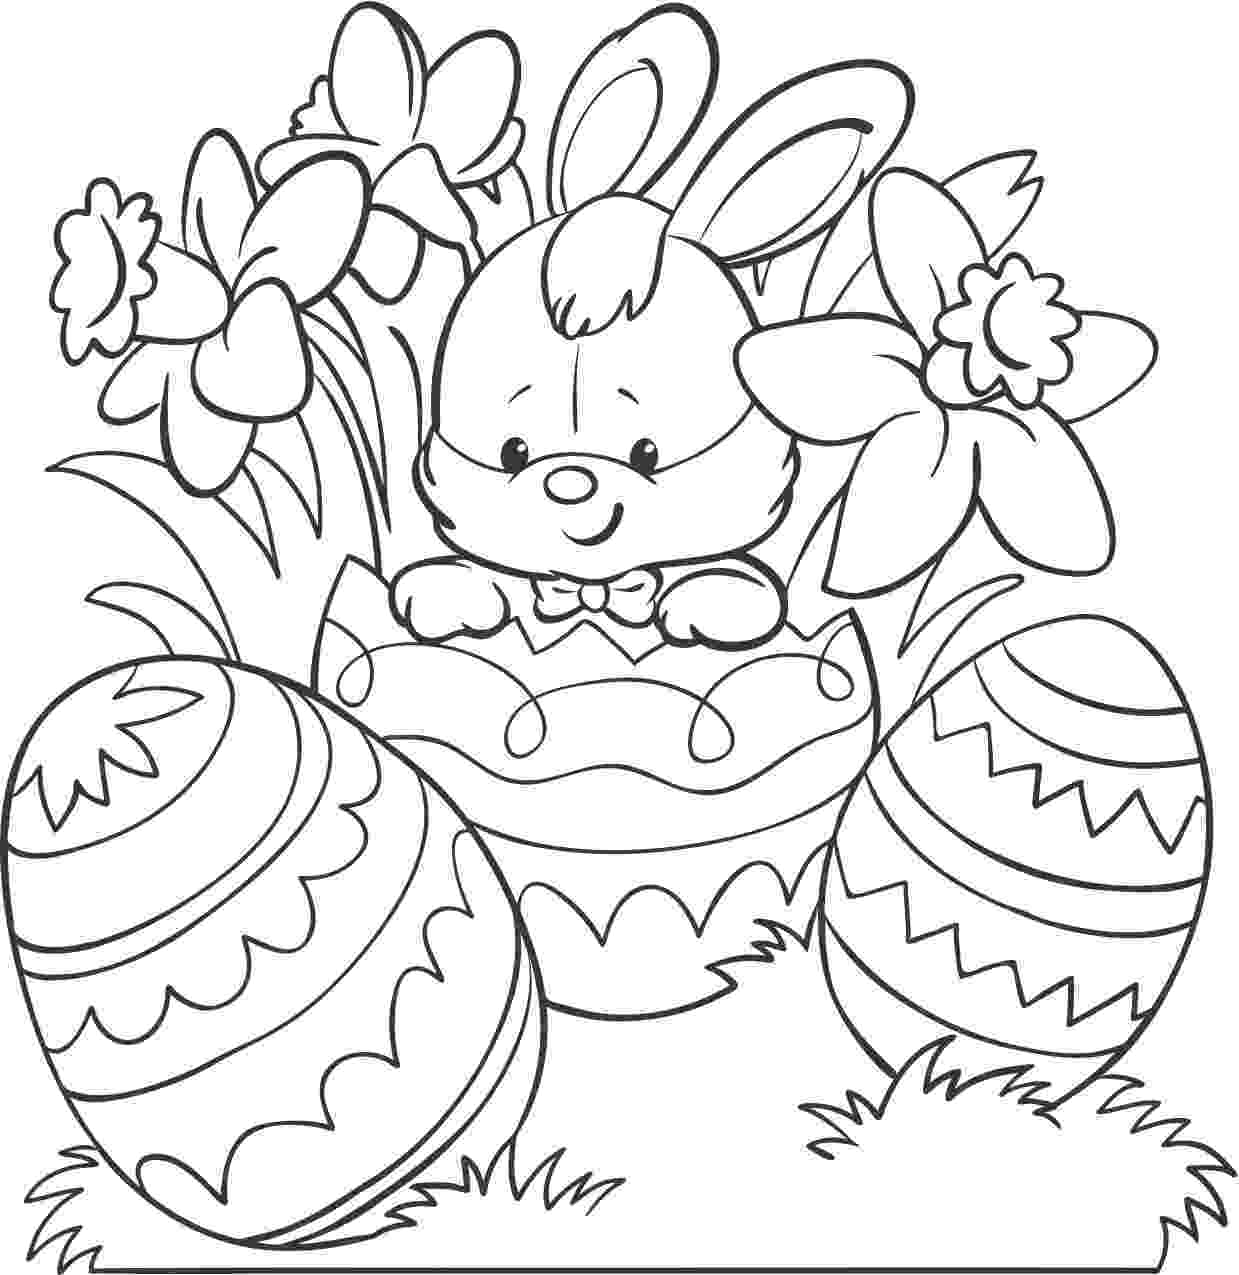 printable colouring sheets for easter easter coloring pages best coloring pages for kids easter colouring for printable sheets